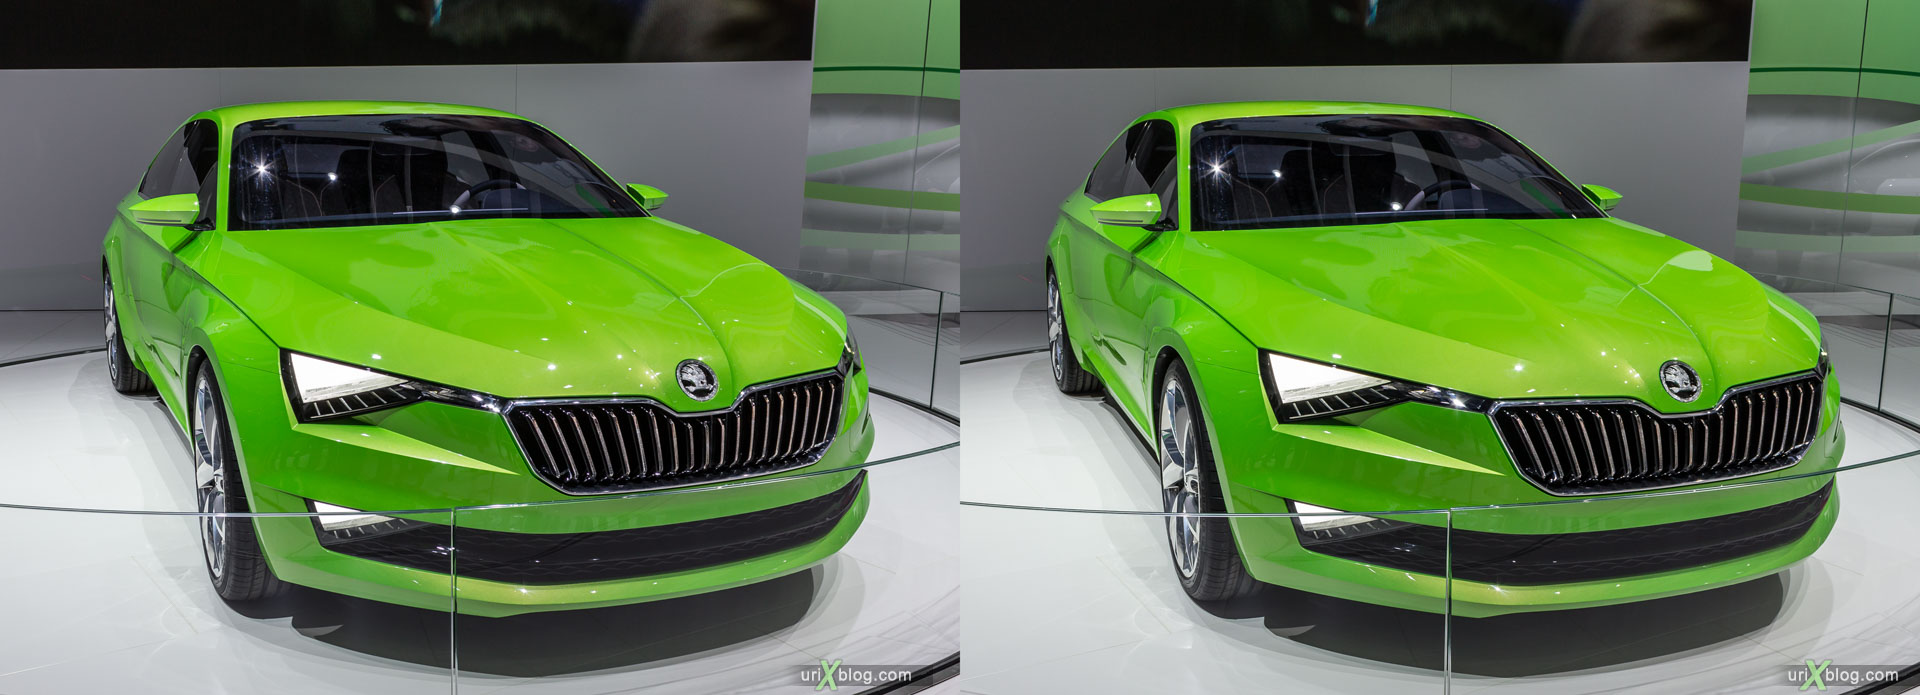 Škoda, Moscow International Automobile Salon 2014, MIAS 2014, girls, models, Crocus Expo, Moscow, Russia, 3D, stereo pair, cross-eyed, crossview, cross view stereo pair, stereoscopic, 2014